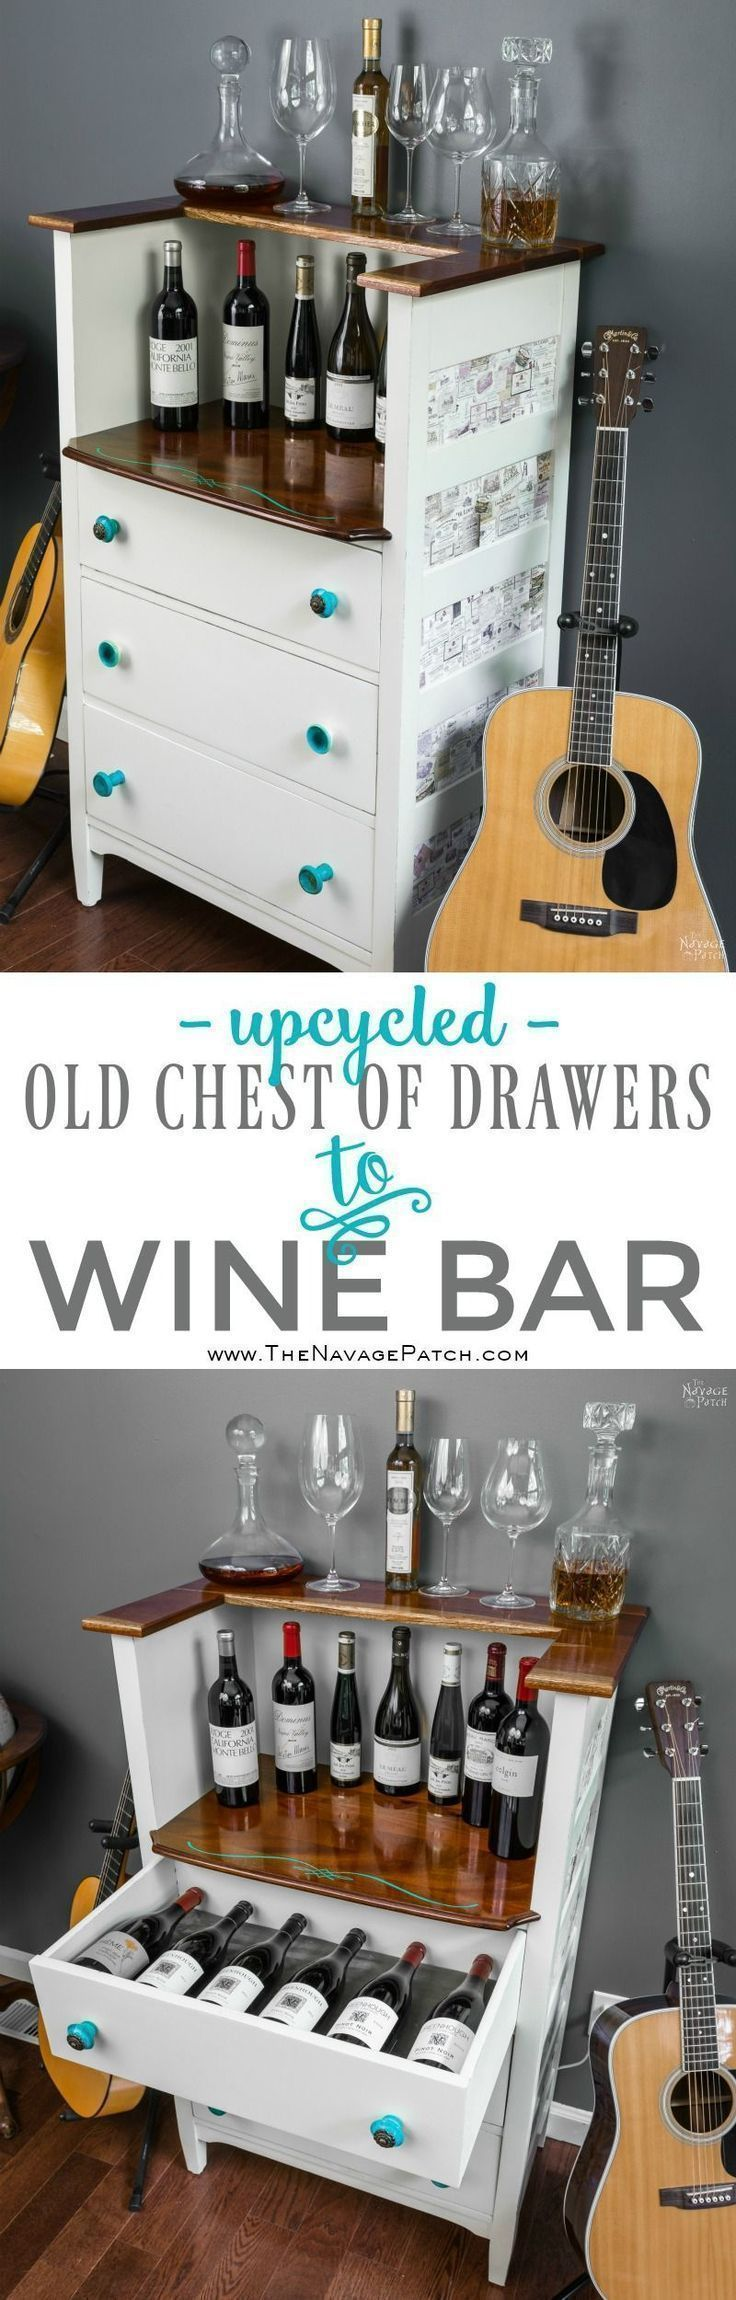 Upcycled: Old Chest of Drawers to Wine Bar | DIY furniture makeover| Upcycled furniture | DIY Wine Bar | From dresser to wine bar | Homemade chalk paint | Painted and upholstered furniture | Upholstery | Farmhouse style furniture | Annie Sloan Old White color | Fabric onlay | Painted wood furniture |Transformed furniture | Before & After | TheNavagePatch.com #paintedfurniturecolors #paintedfurniturebeforeandafter #diydressermakeover